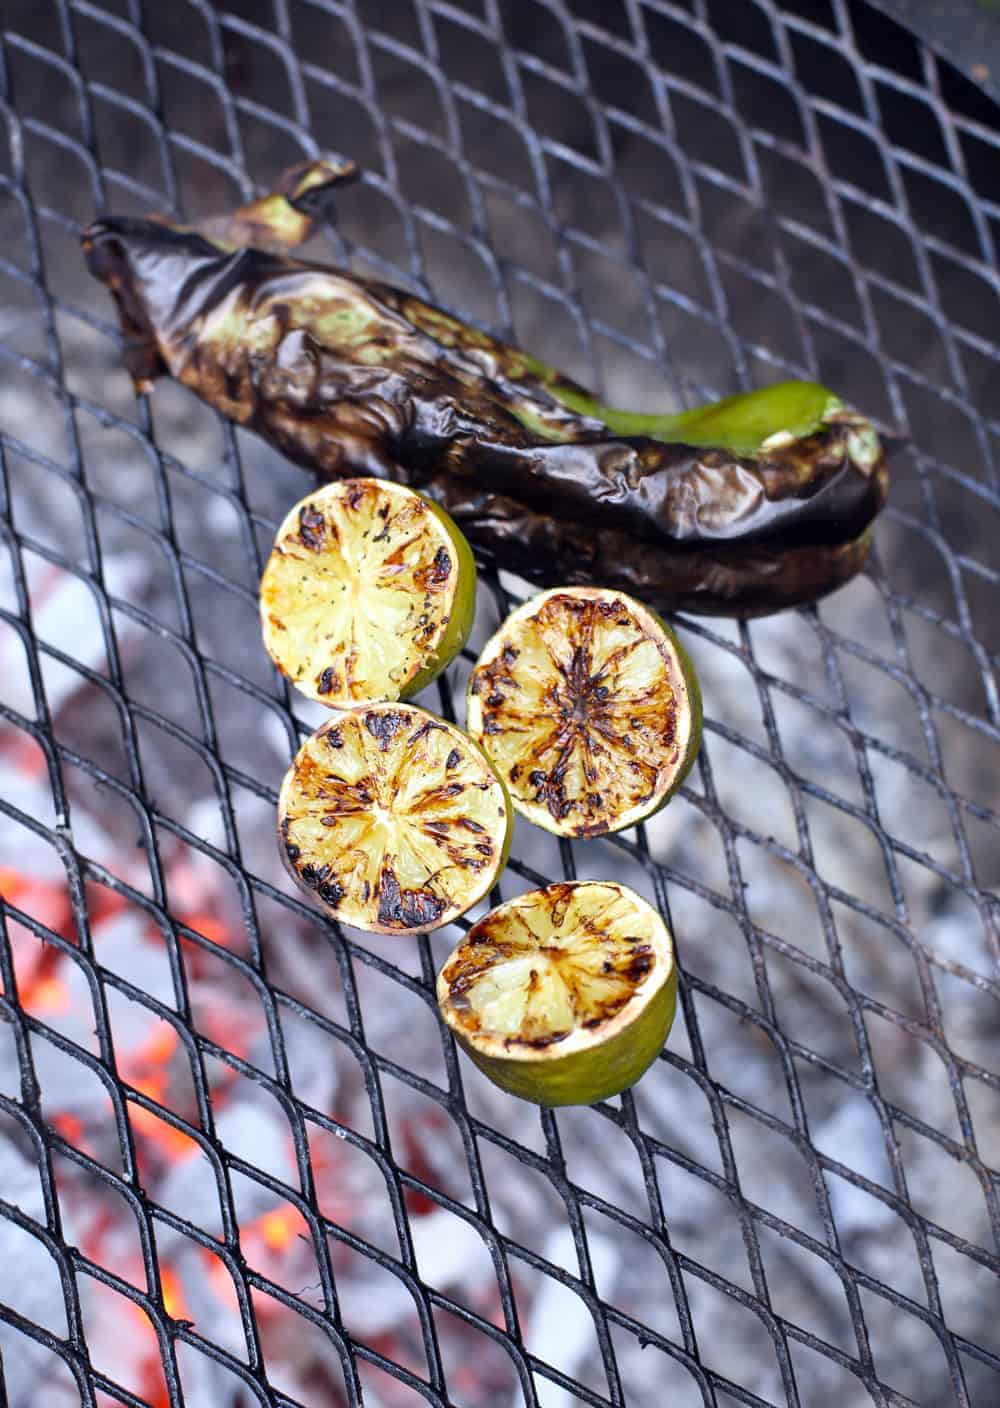 Grilling Peppers and Limes for Black Bean Salad